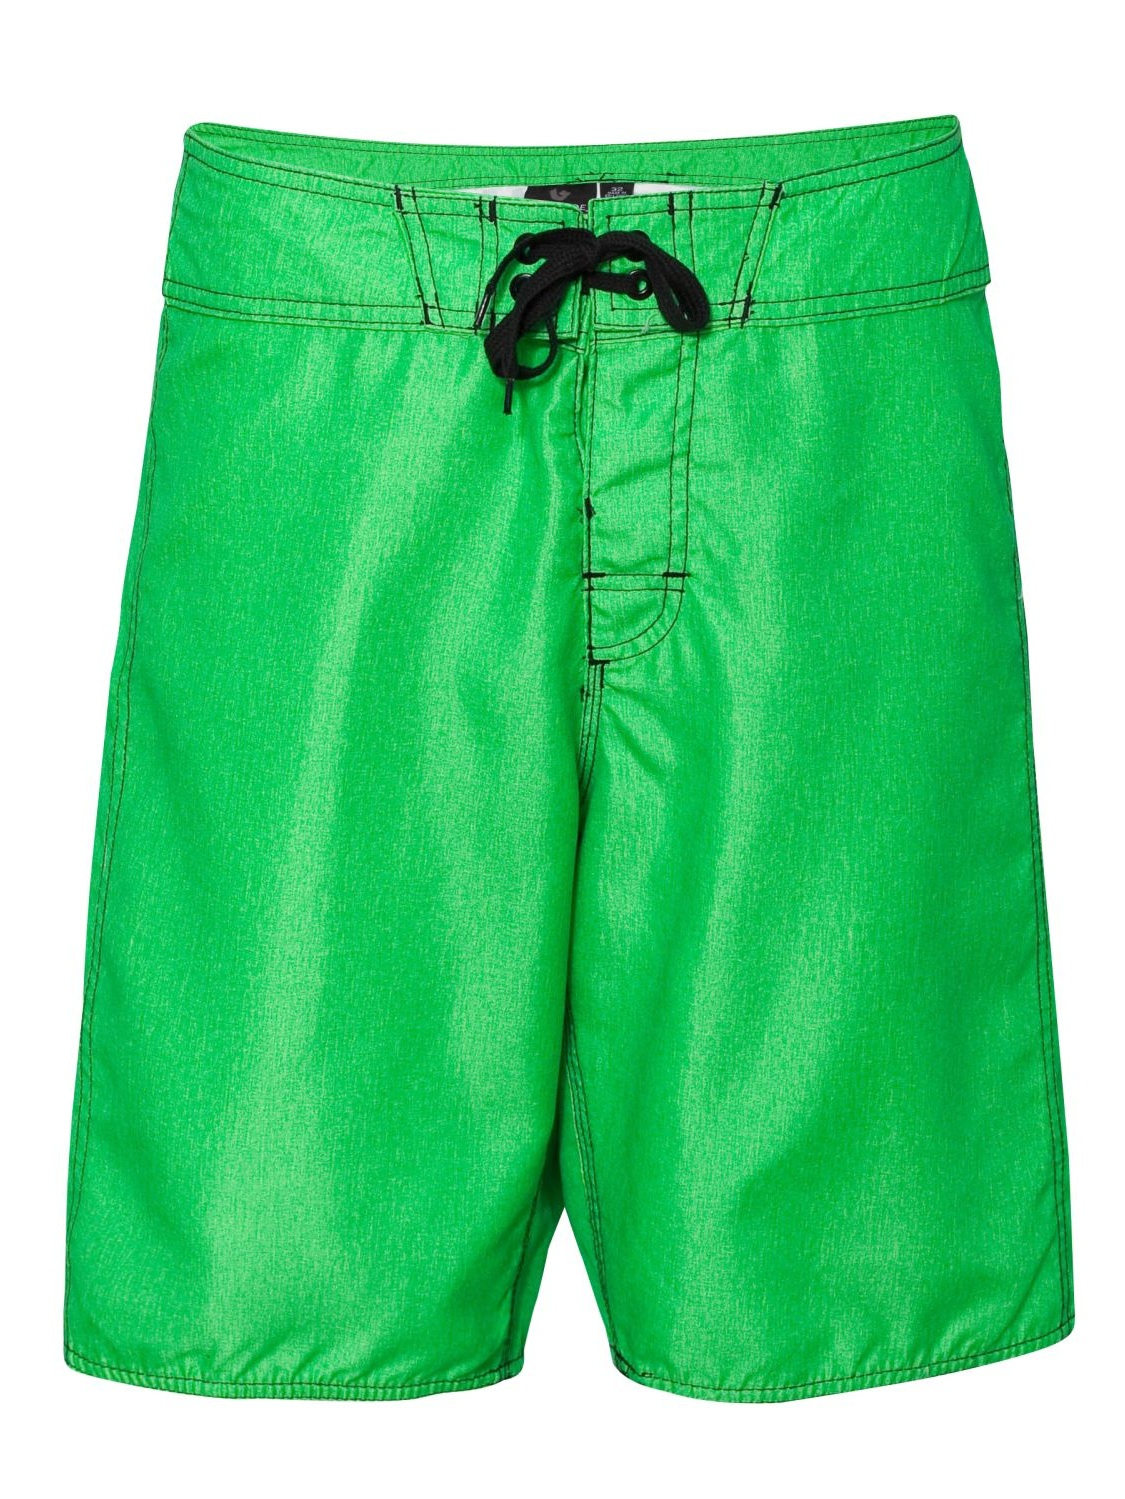 BurnsideHeathered Board Shorts 9305